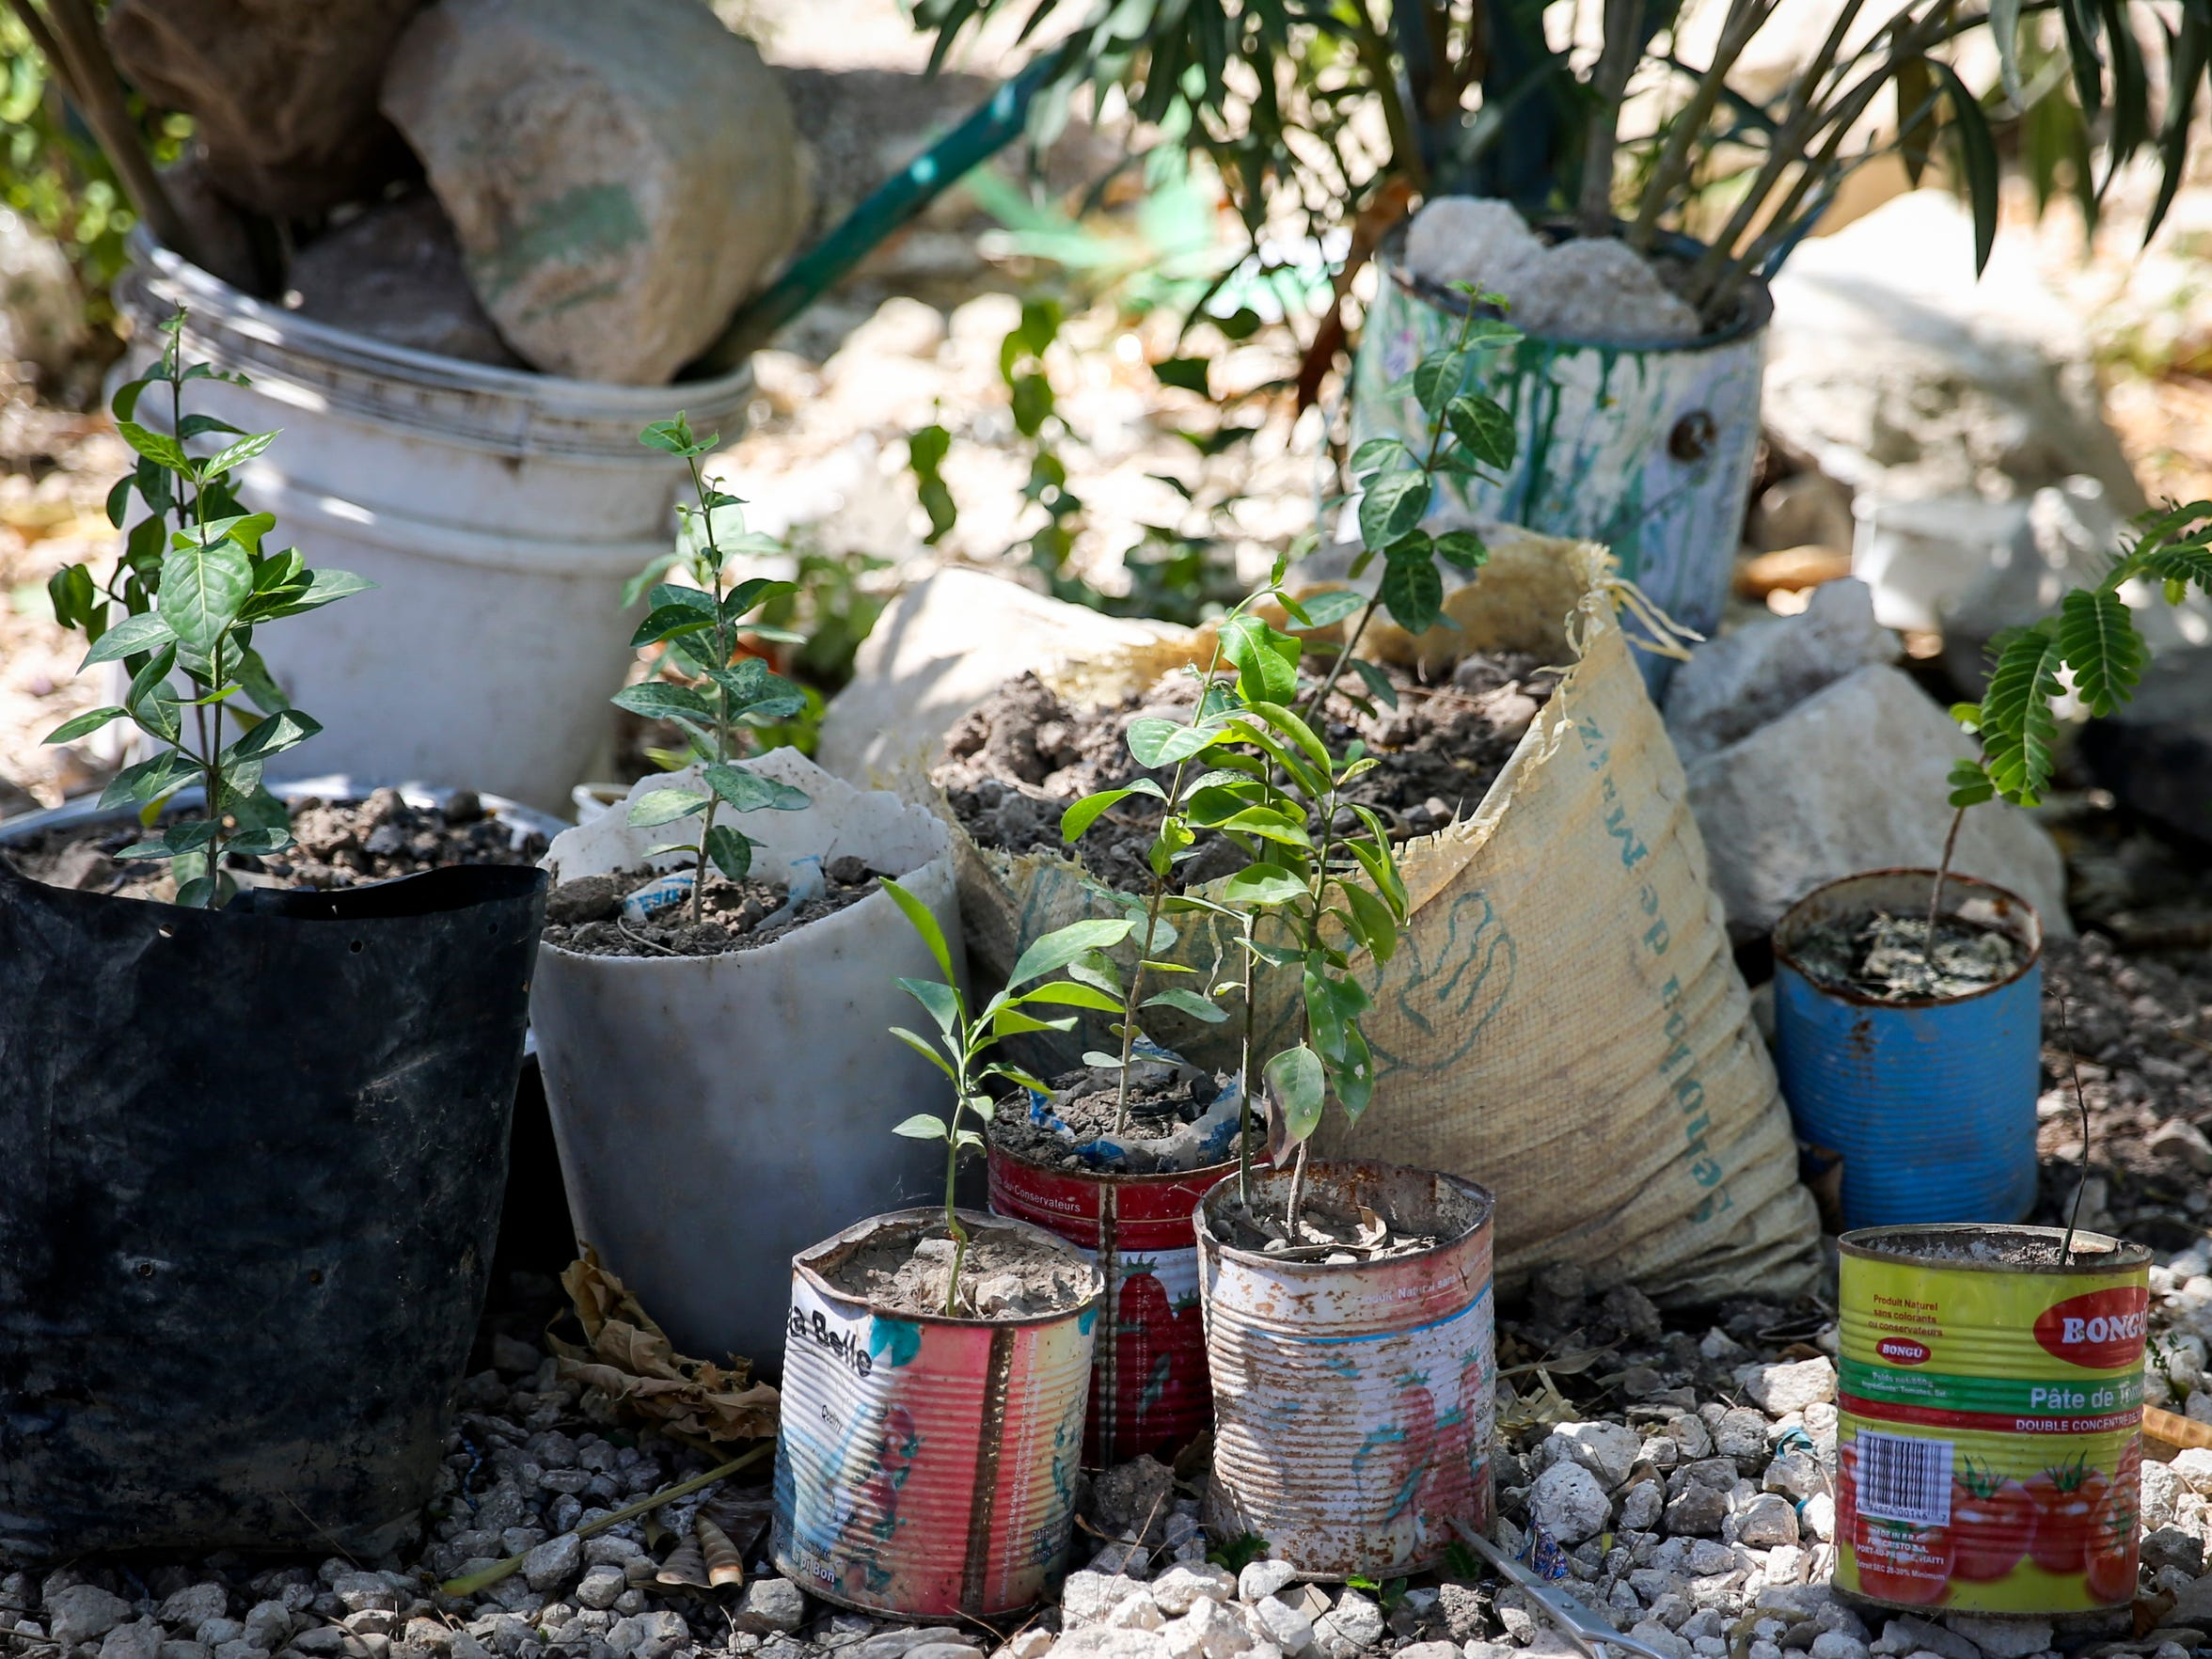 Prospere Desilme grows plants in cans and buckets at